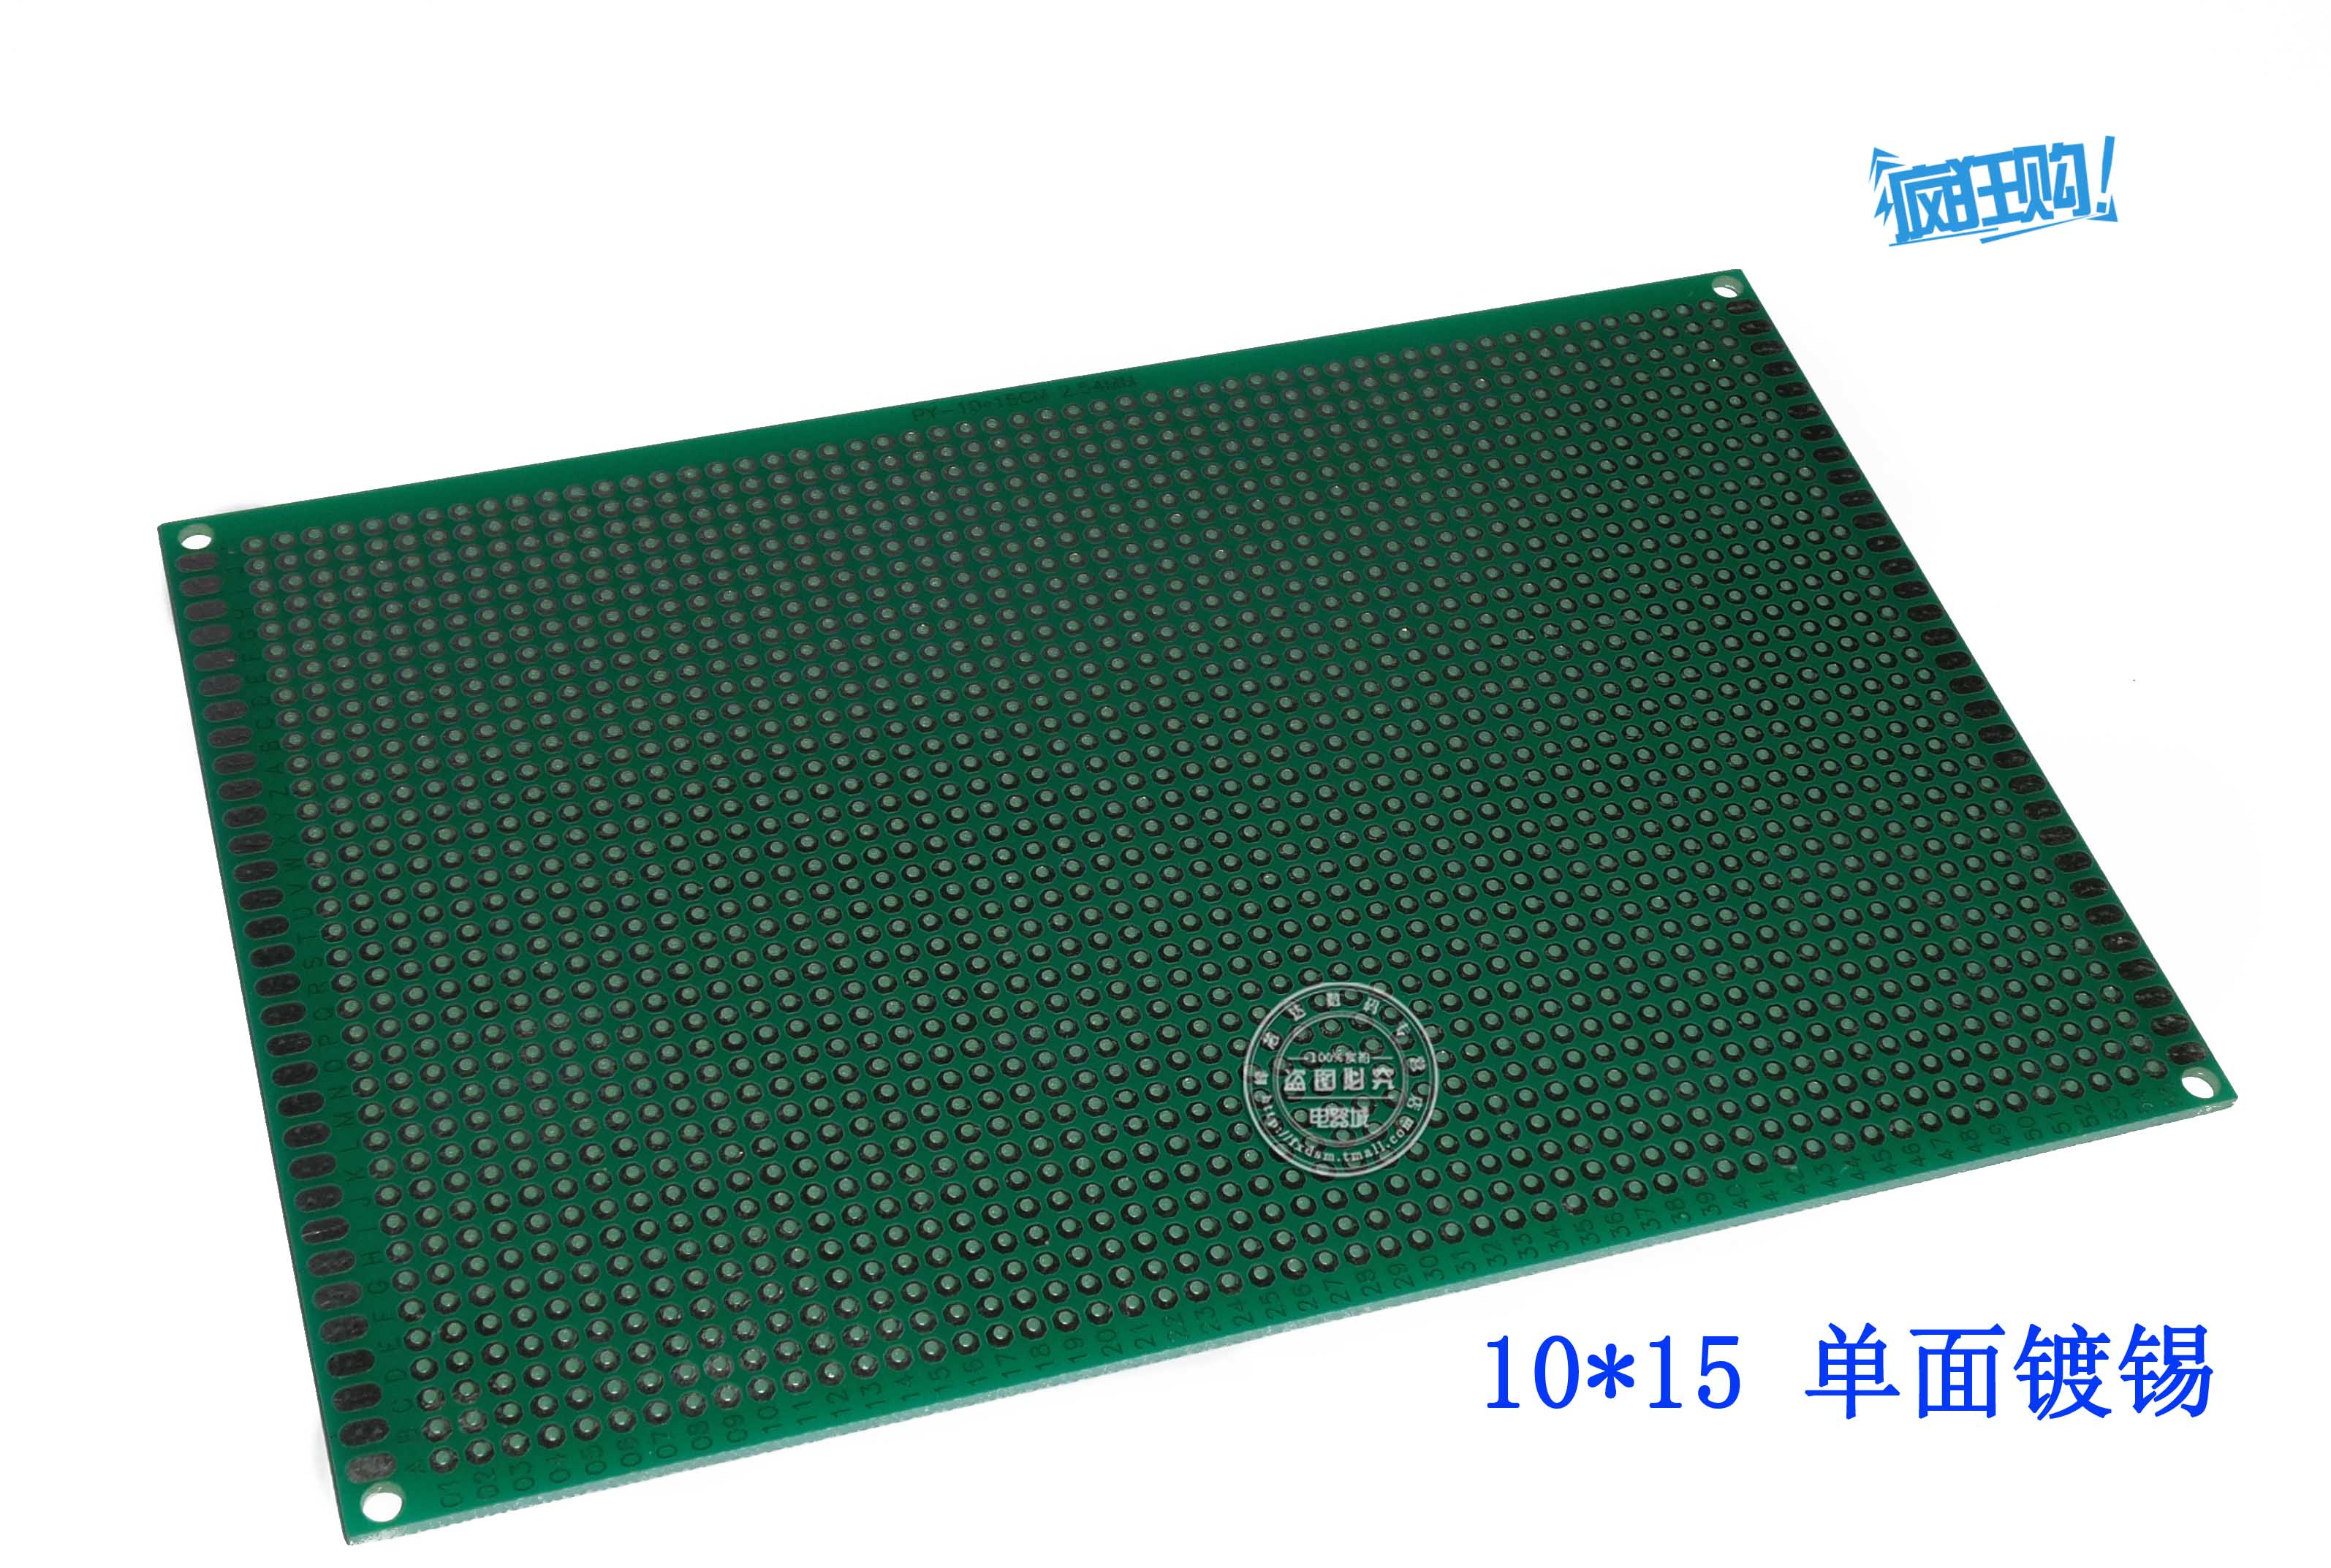 Rui shu broadcast cecectomized 54MM spacing 10 * 15cm sided hasl pcb circuit board hole board test board